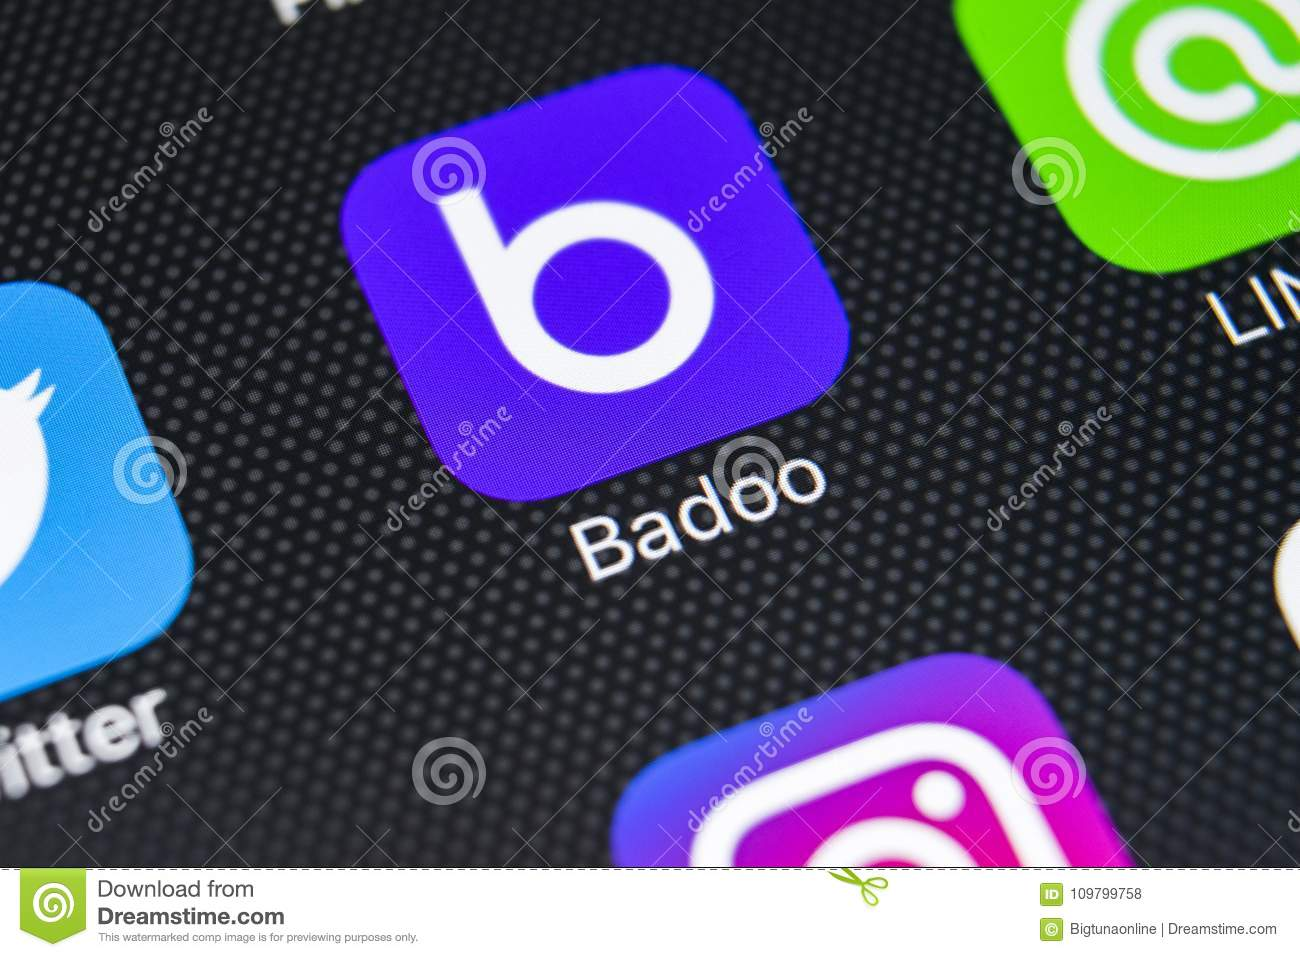 badoo download